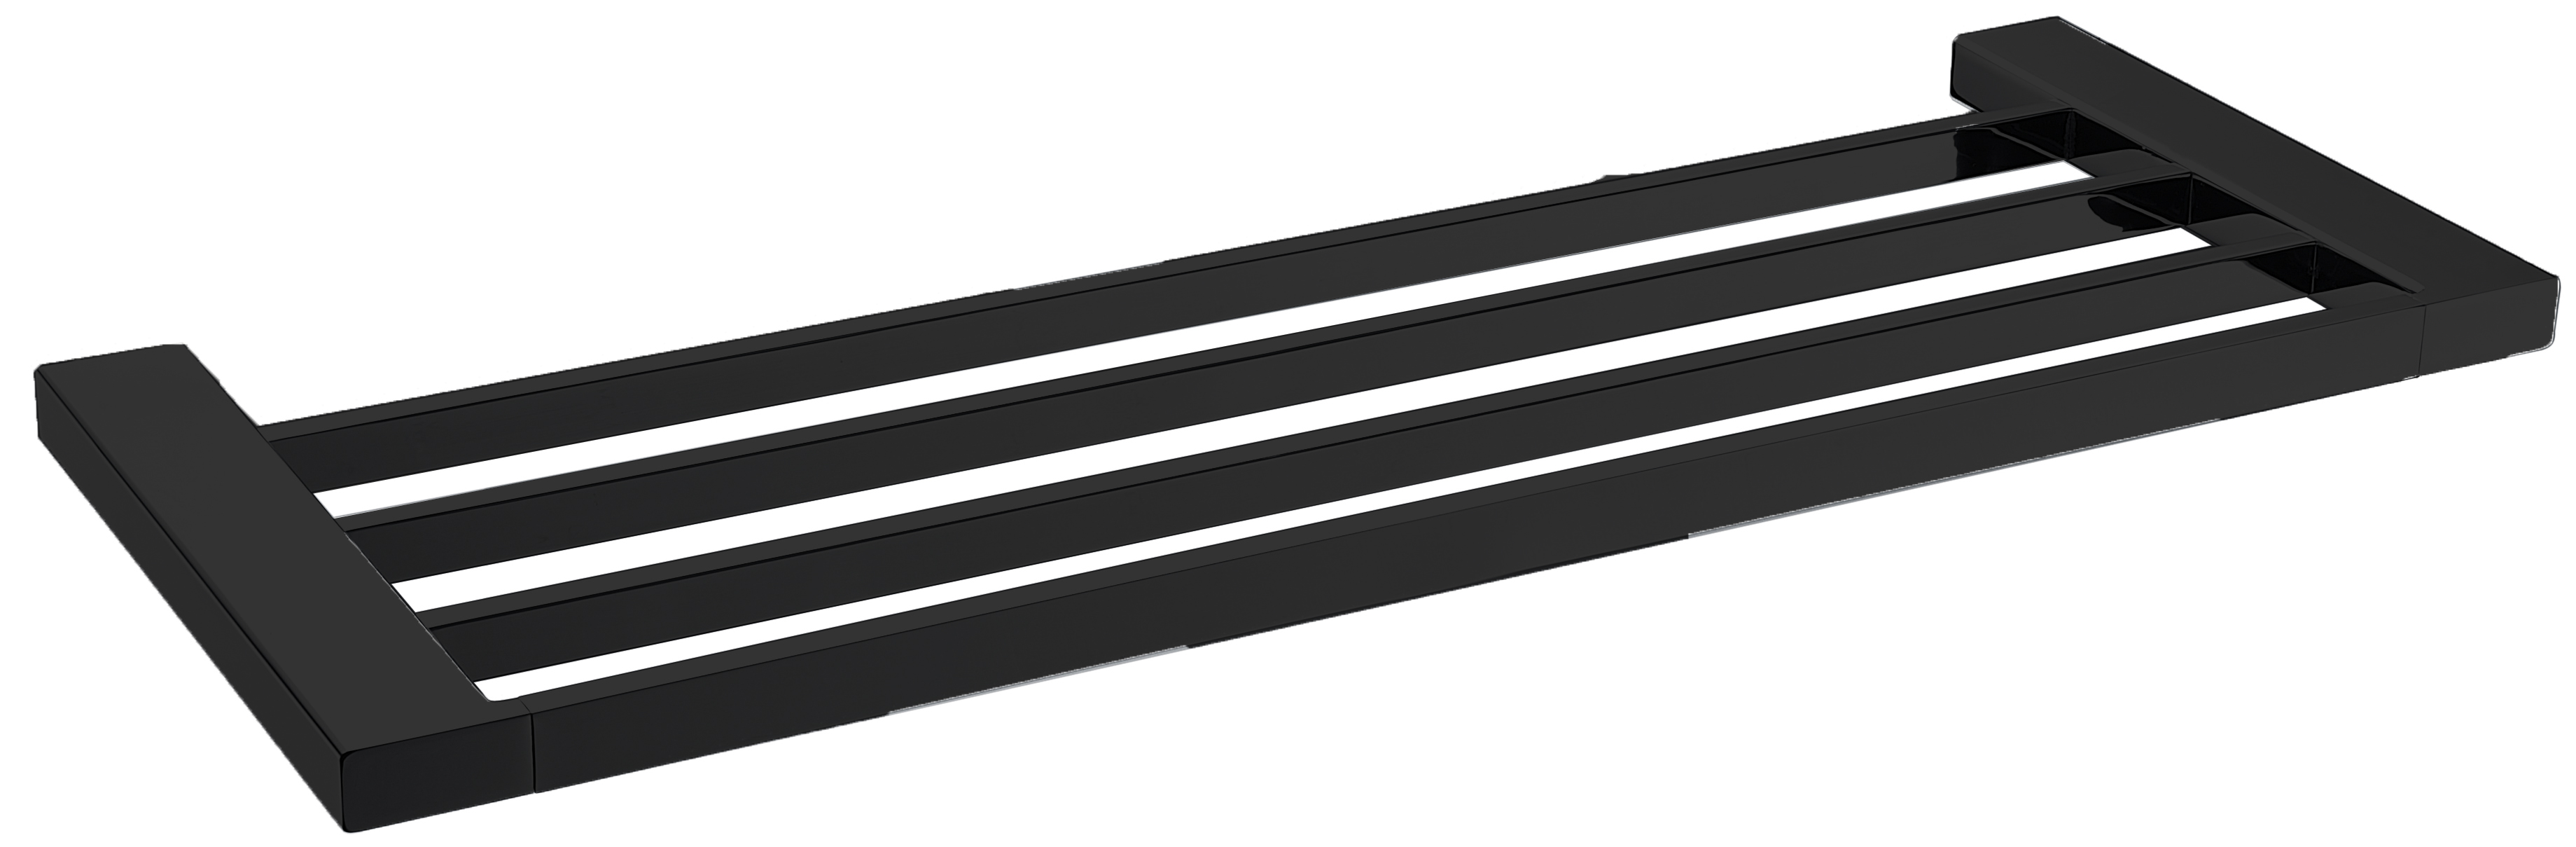 5603-600-B Elegancia Square Bathroom Towel Rack Shelf 600mm Matte Black